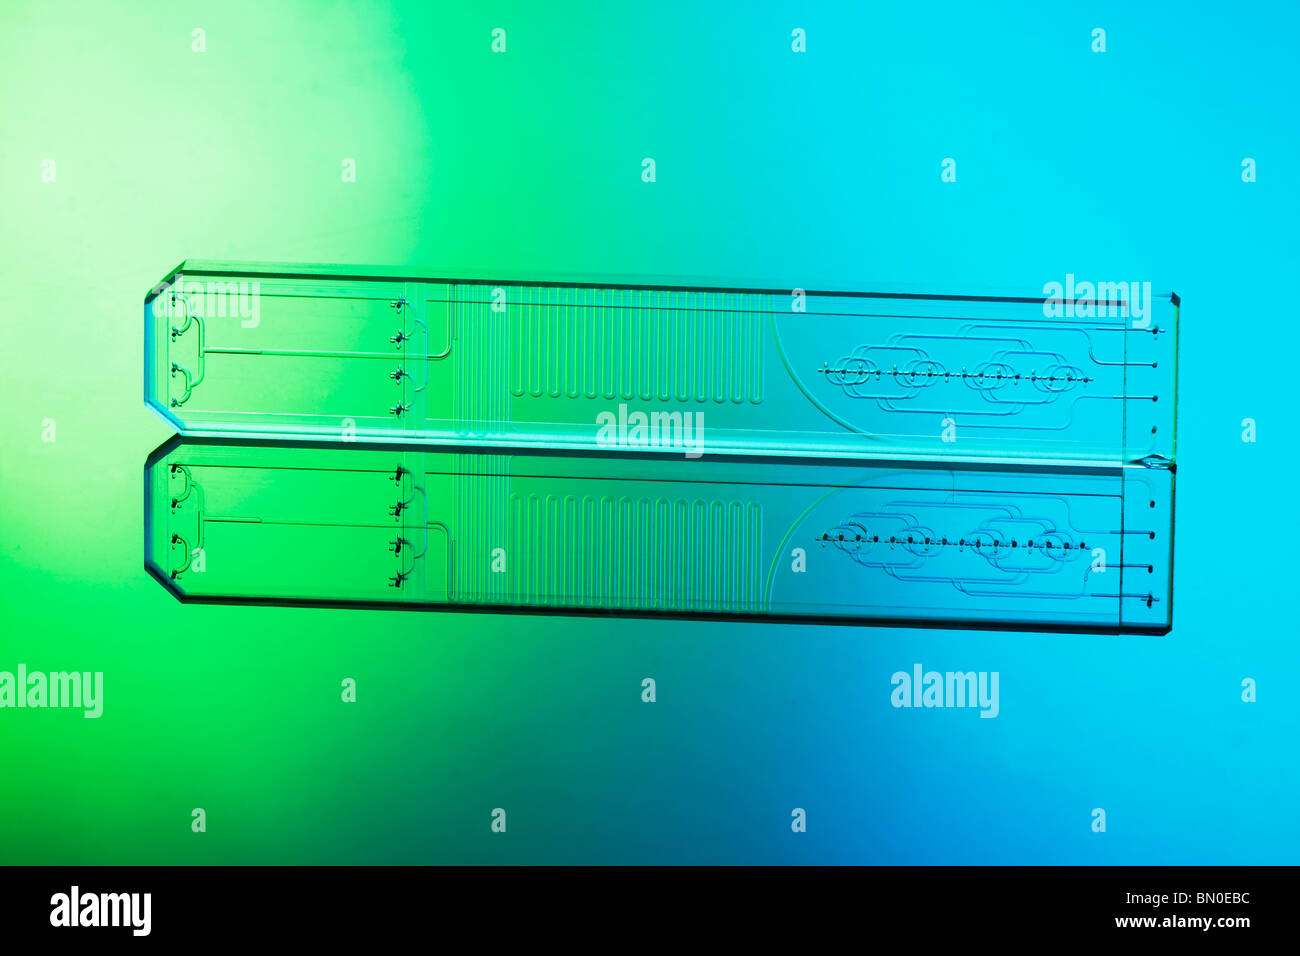 Microfluidic etched glass microreactor chip mixing mutiple fluid streams of liquids in micro and nano technology - Stock Image